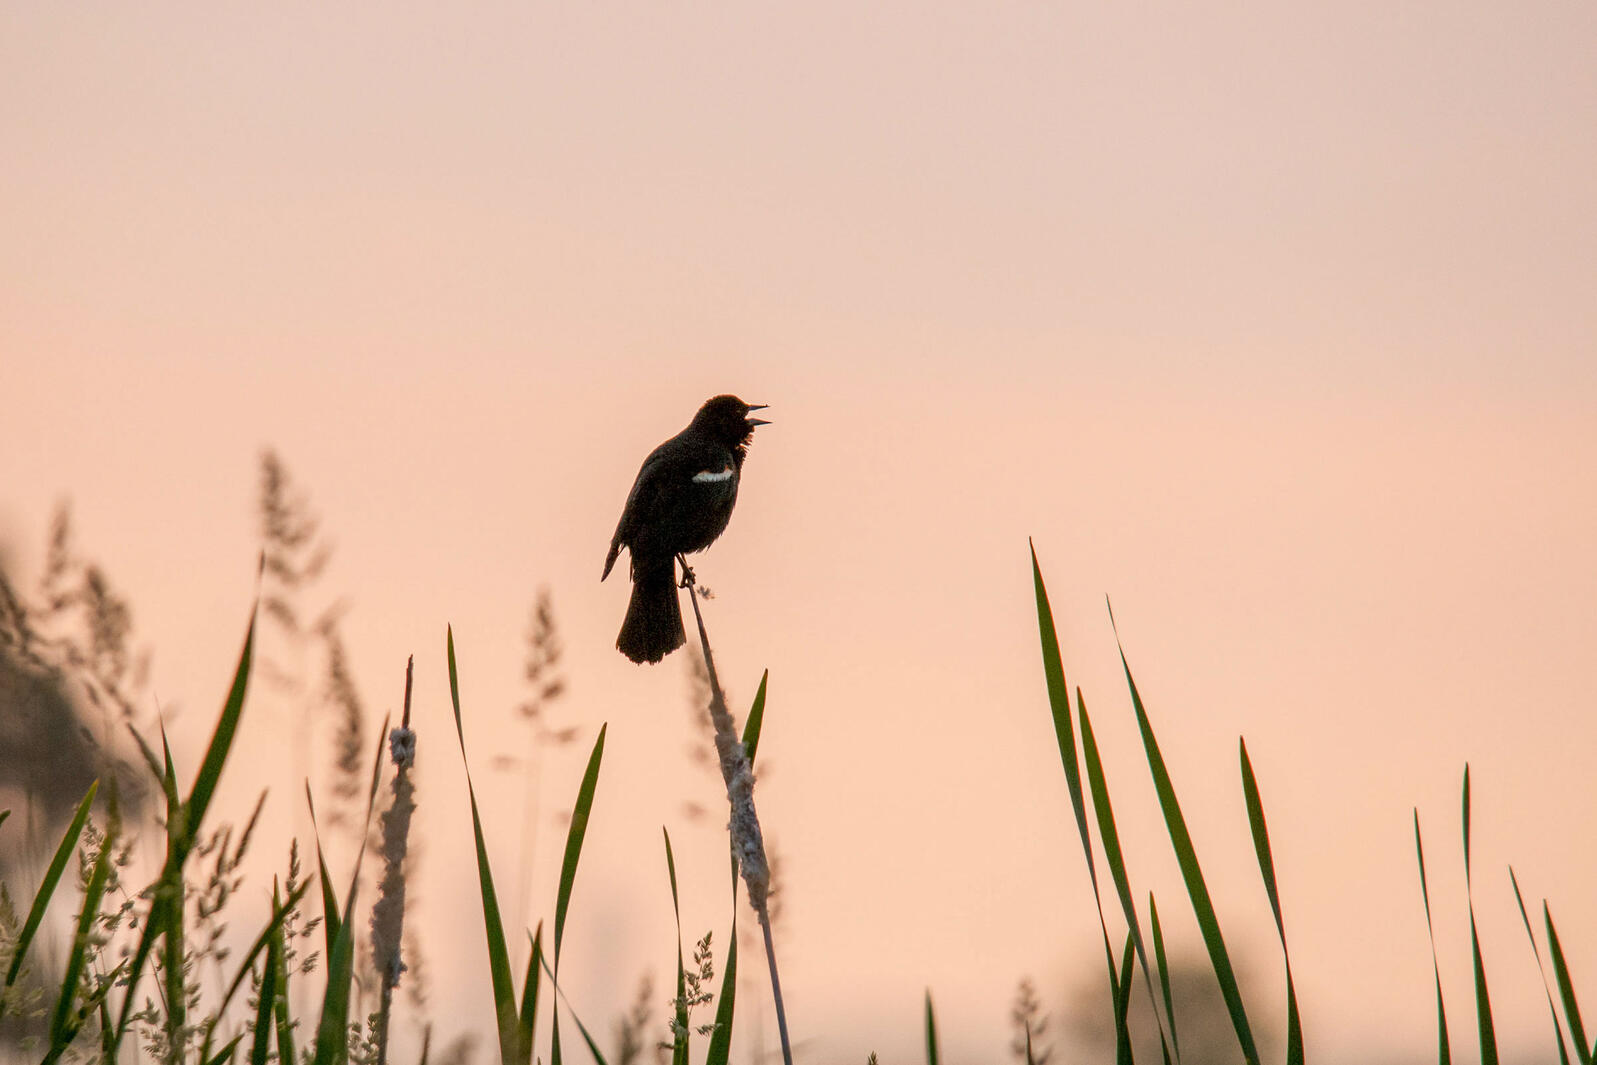 Red-winged Blackbird singing at dawn. Paul Sparks/Alamy